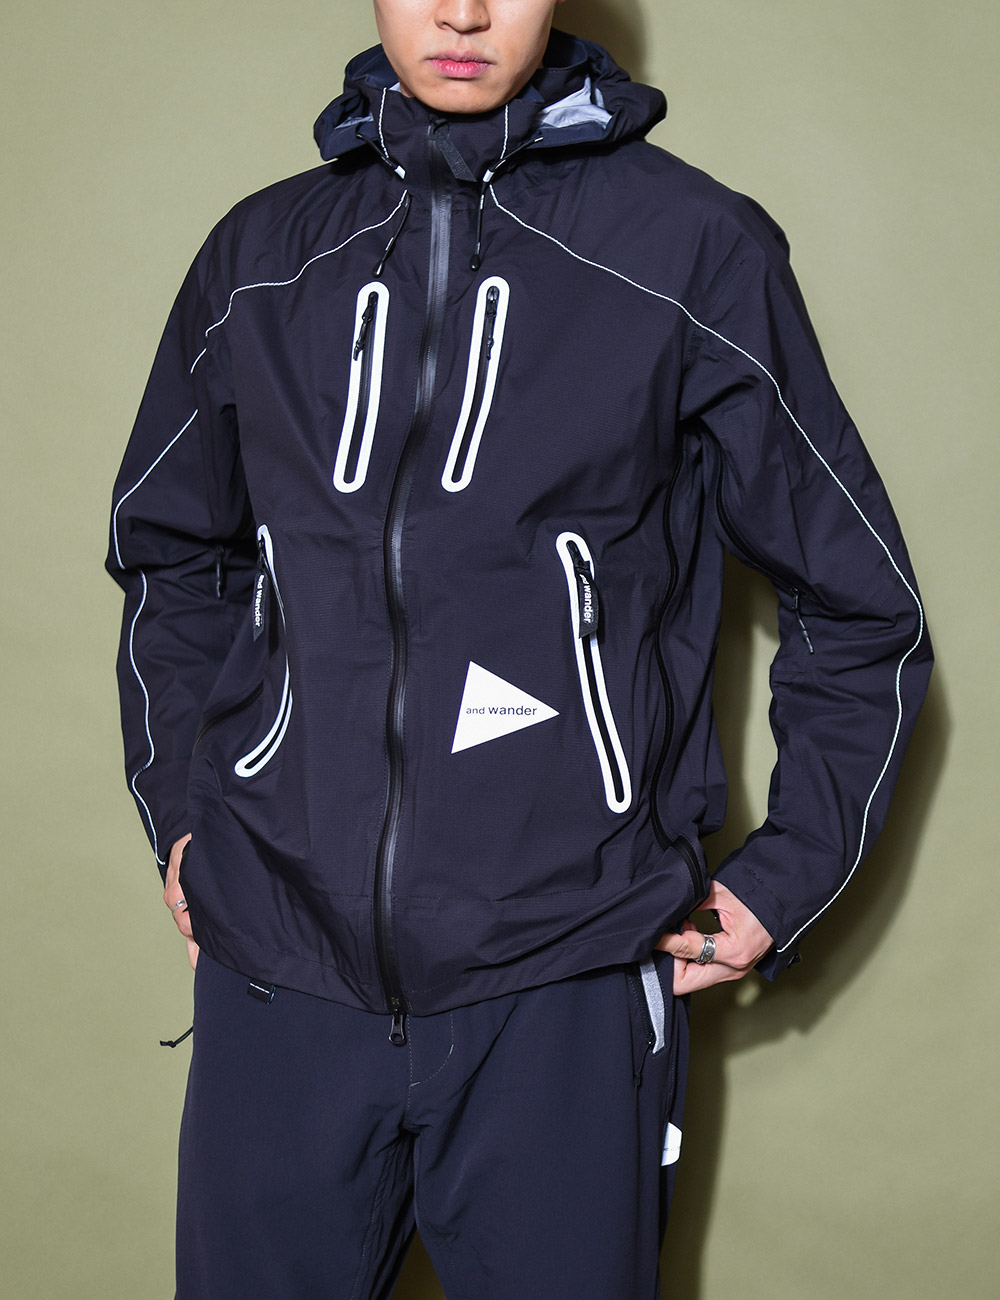 and wander : E VENT JACKET (BLACK)